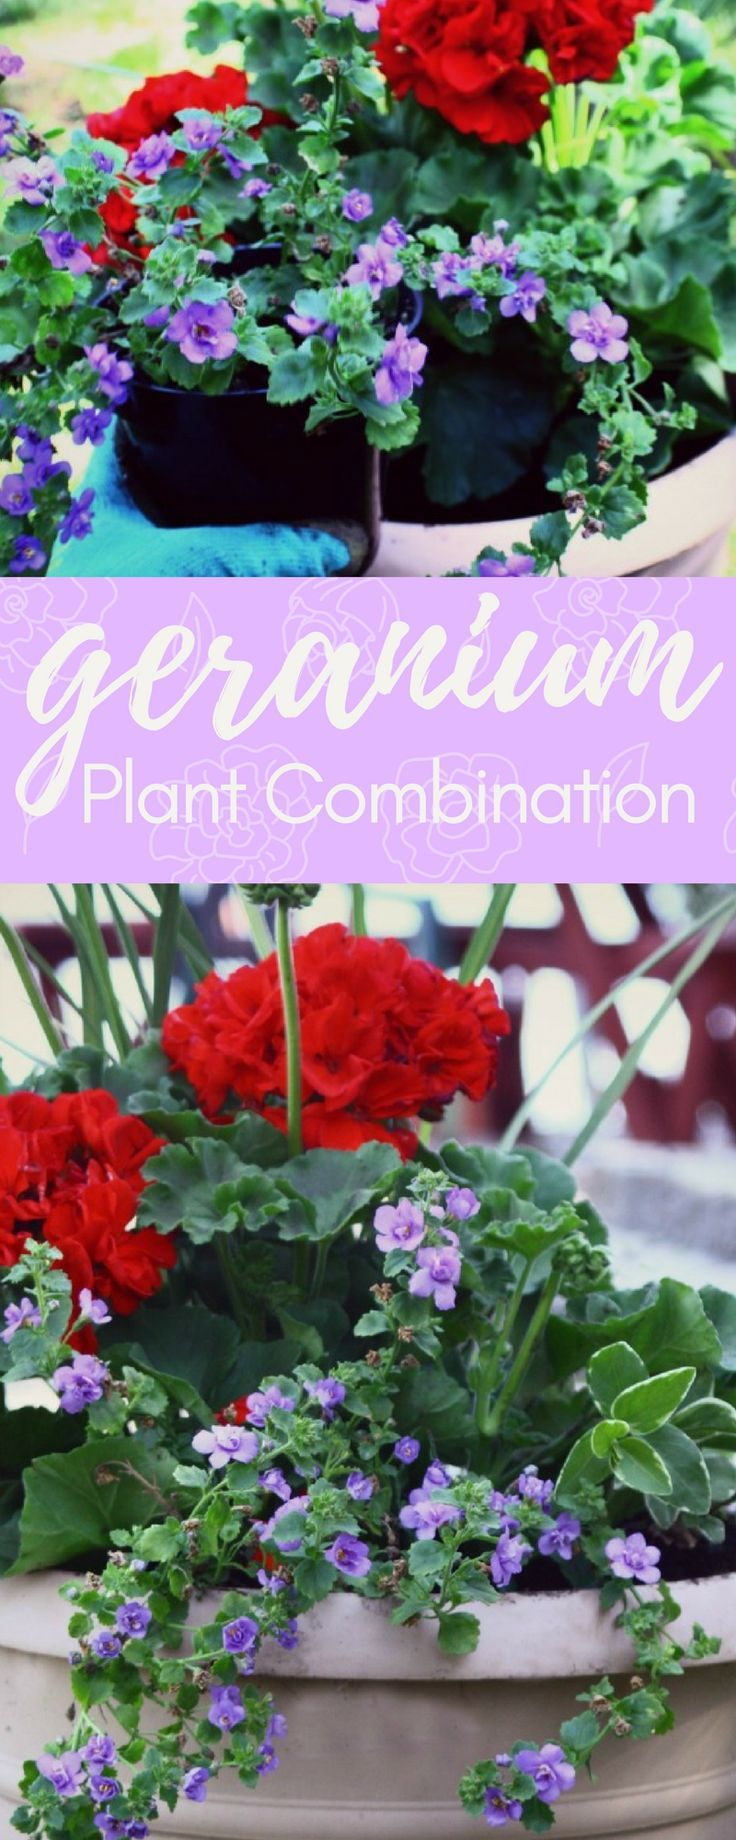 The Easiest Plant Combination Featuring Geraniums A Great Sy Vibrant Summer Flower Very Showy Blooms That Last All And Into Fall